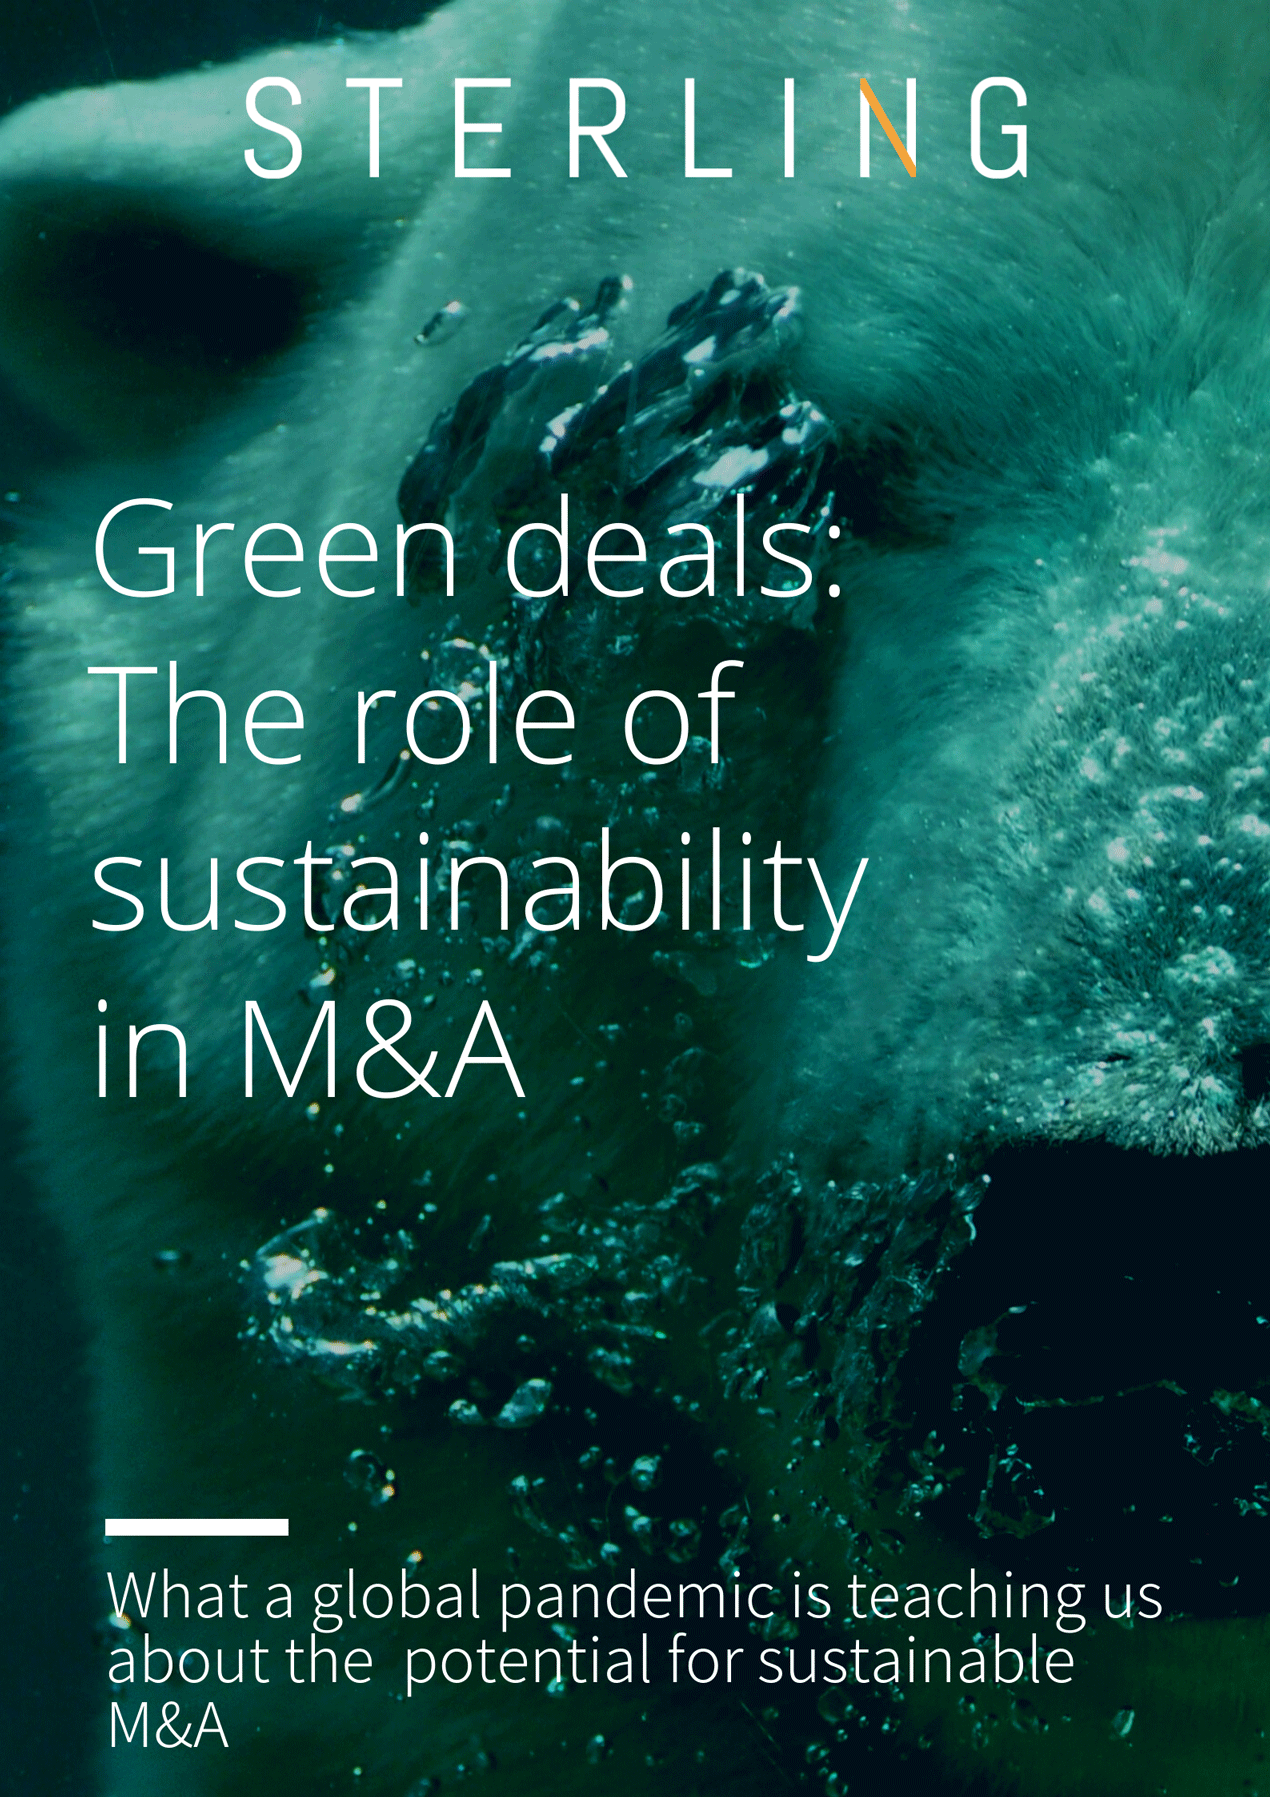 Climate Change + M&A Report Covers